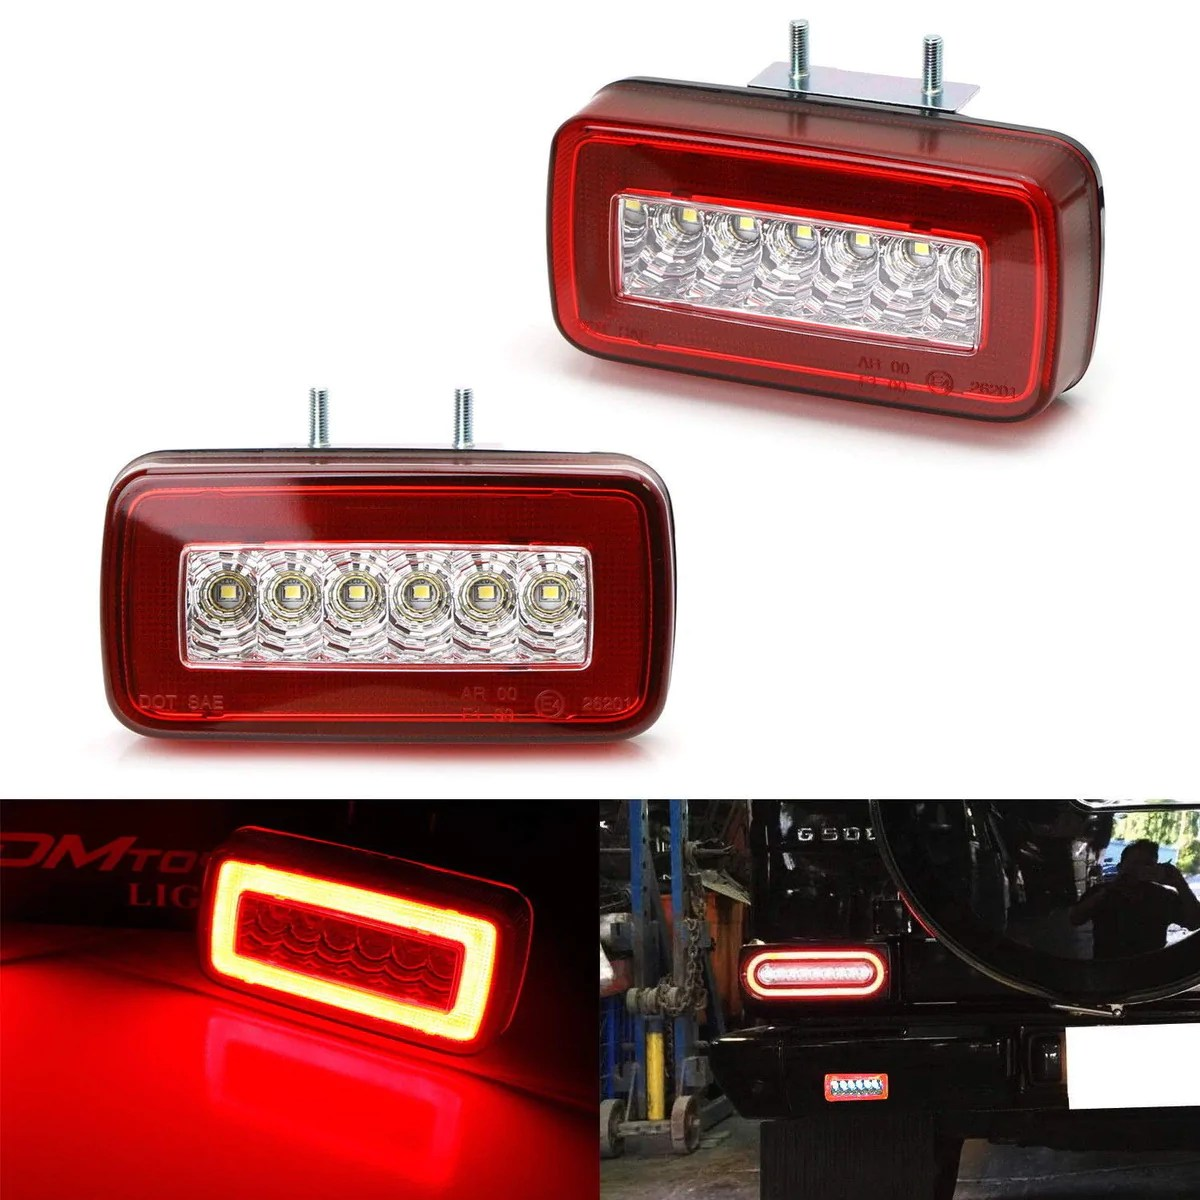 small resolution of red or smoked lens 3 in 1 led rear fog backup light kit for 1986 2018 mercedes benz w463 g class g500 g550 g55 g63 amg functions as rear fog driving brake